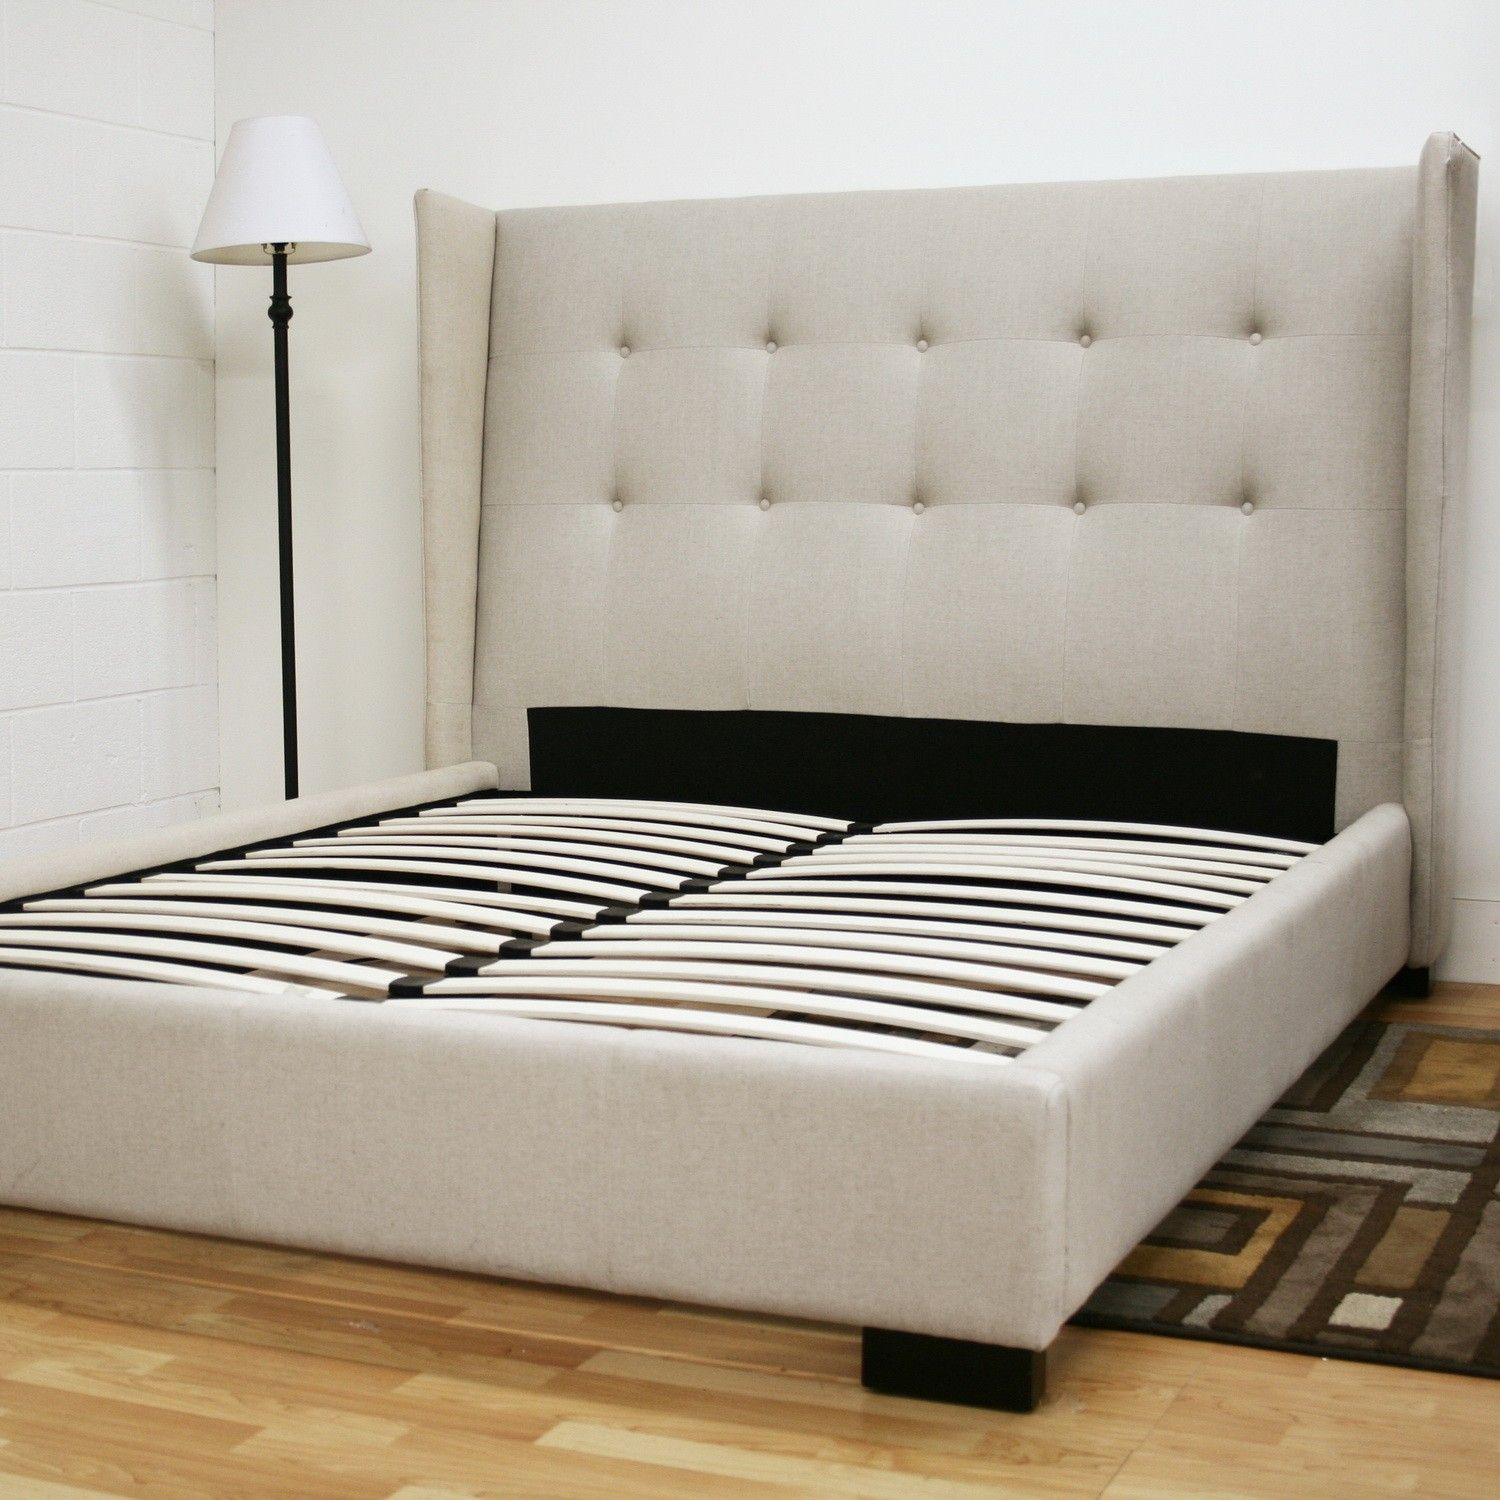 Low Floor Bed Bedroom Tall Bed Frame Matched With The Floor Looks